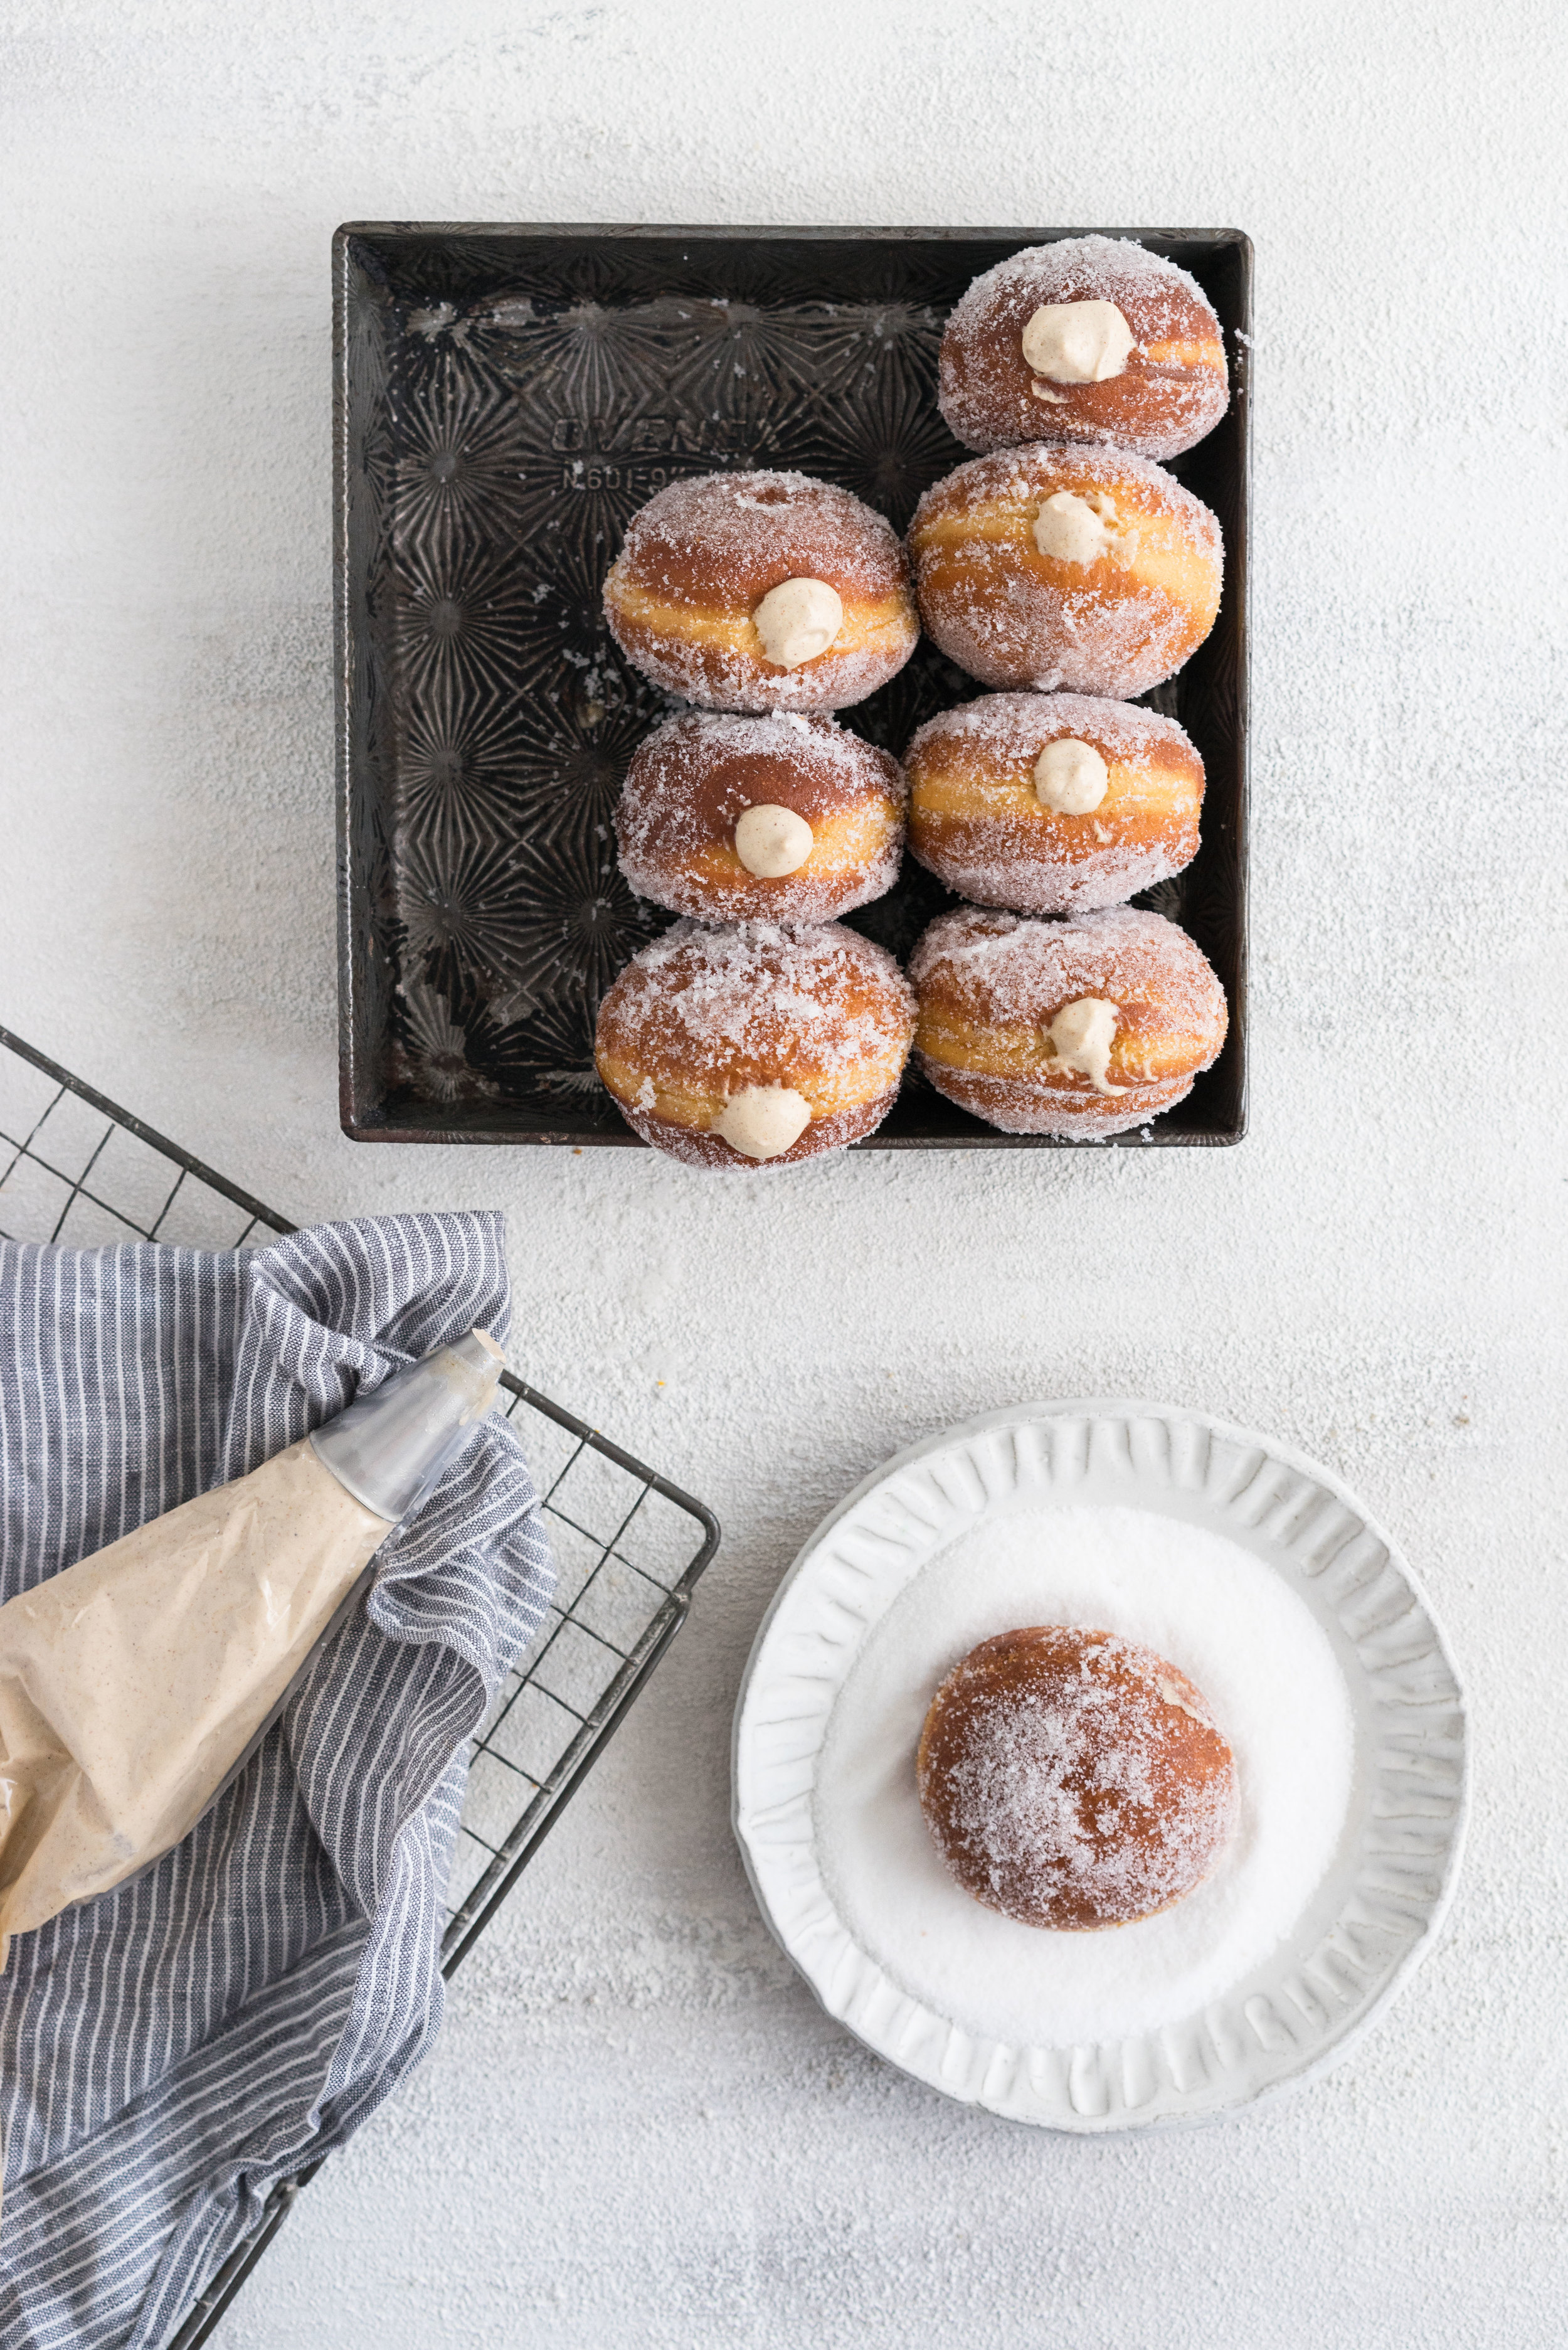 Gingerbread doughnuts with a spiced brown sugar diplomat cream. Pillowy brioche dough, spiced lightly with ginger and molasses, are stuffed with a light and creamy filling which is loaded with christmas spice. A perfect little package of holiday cheer